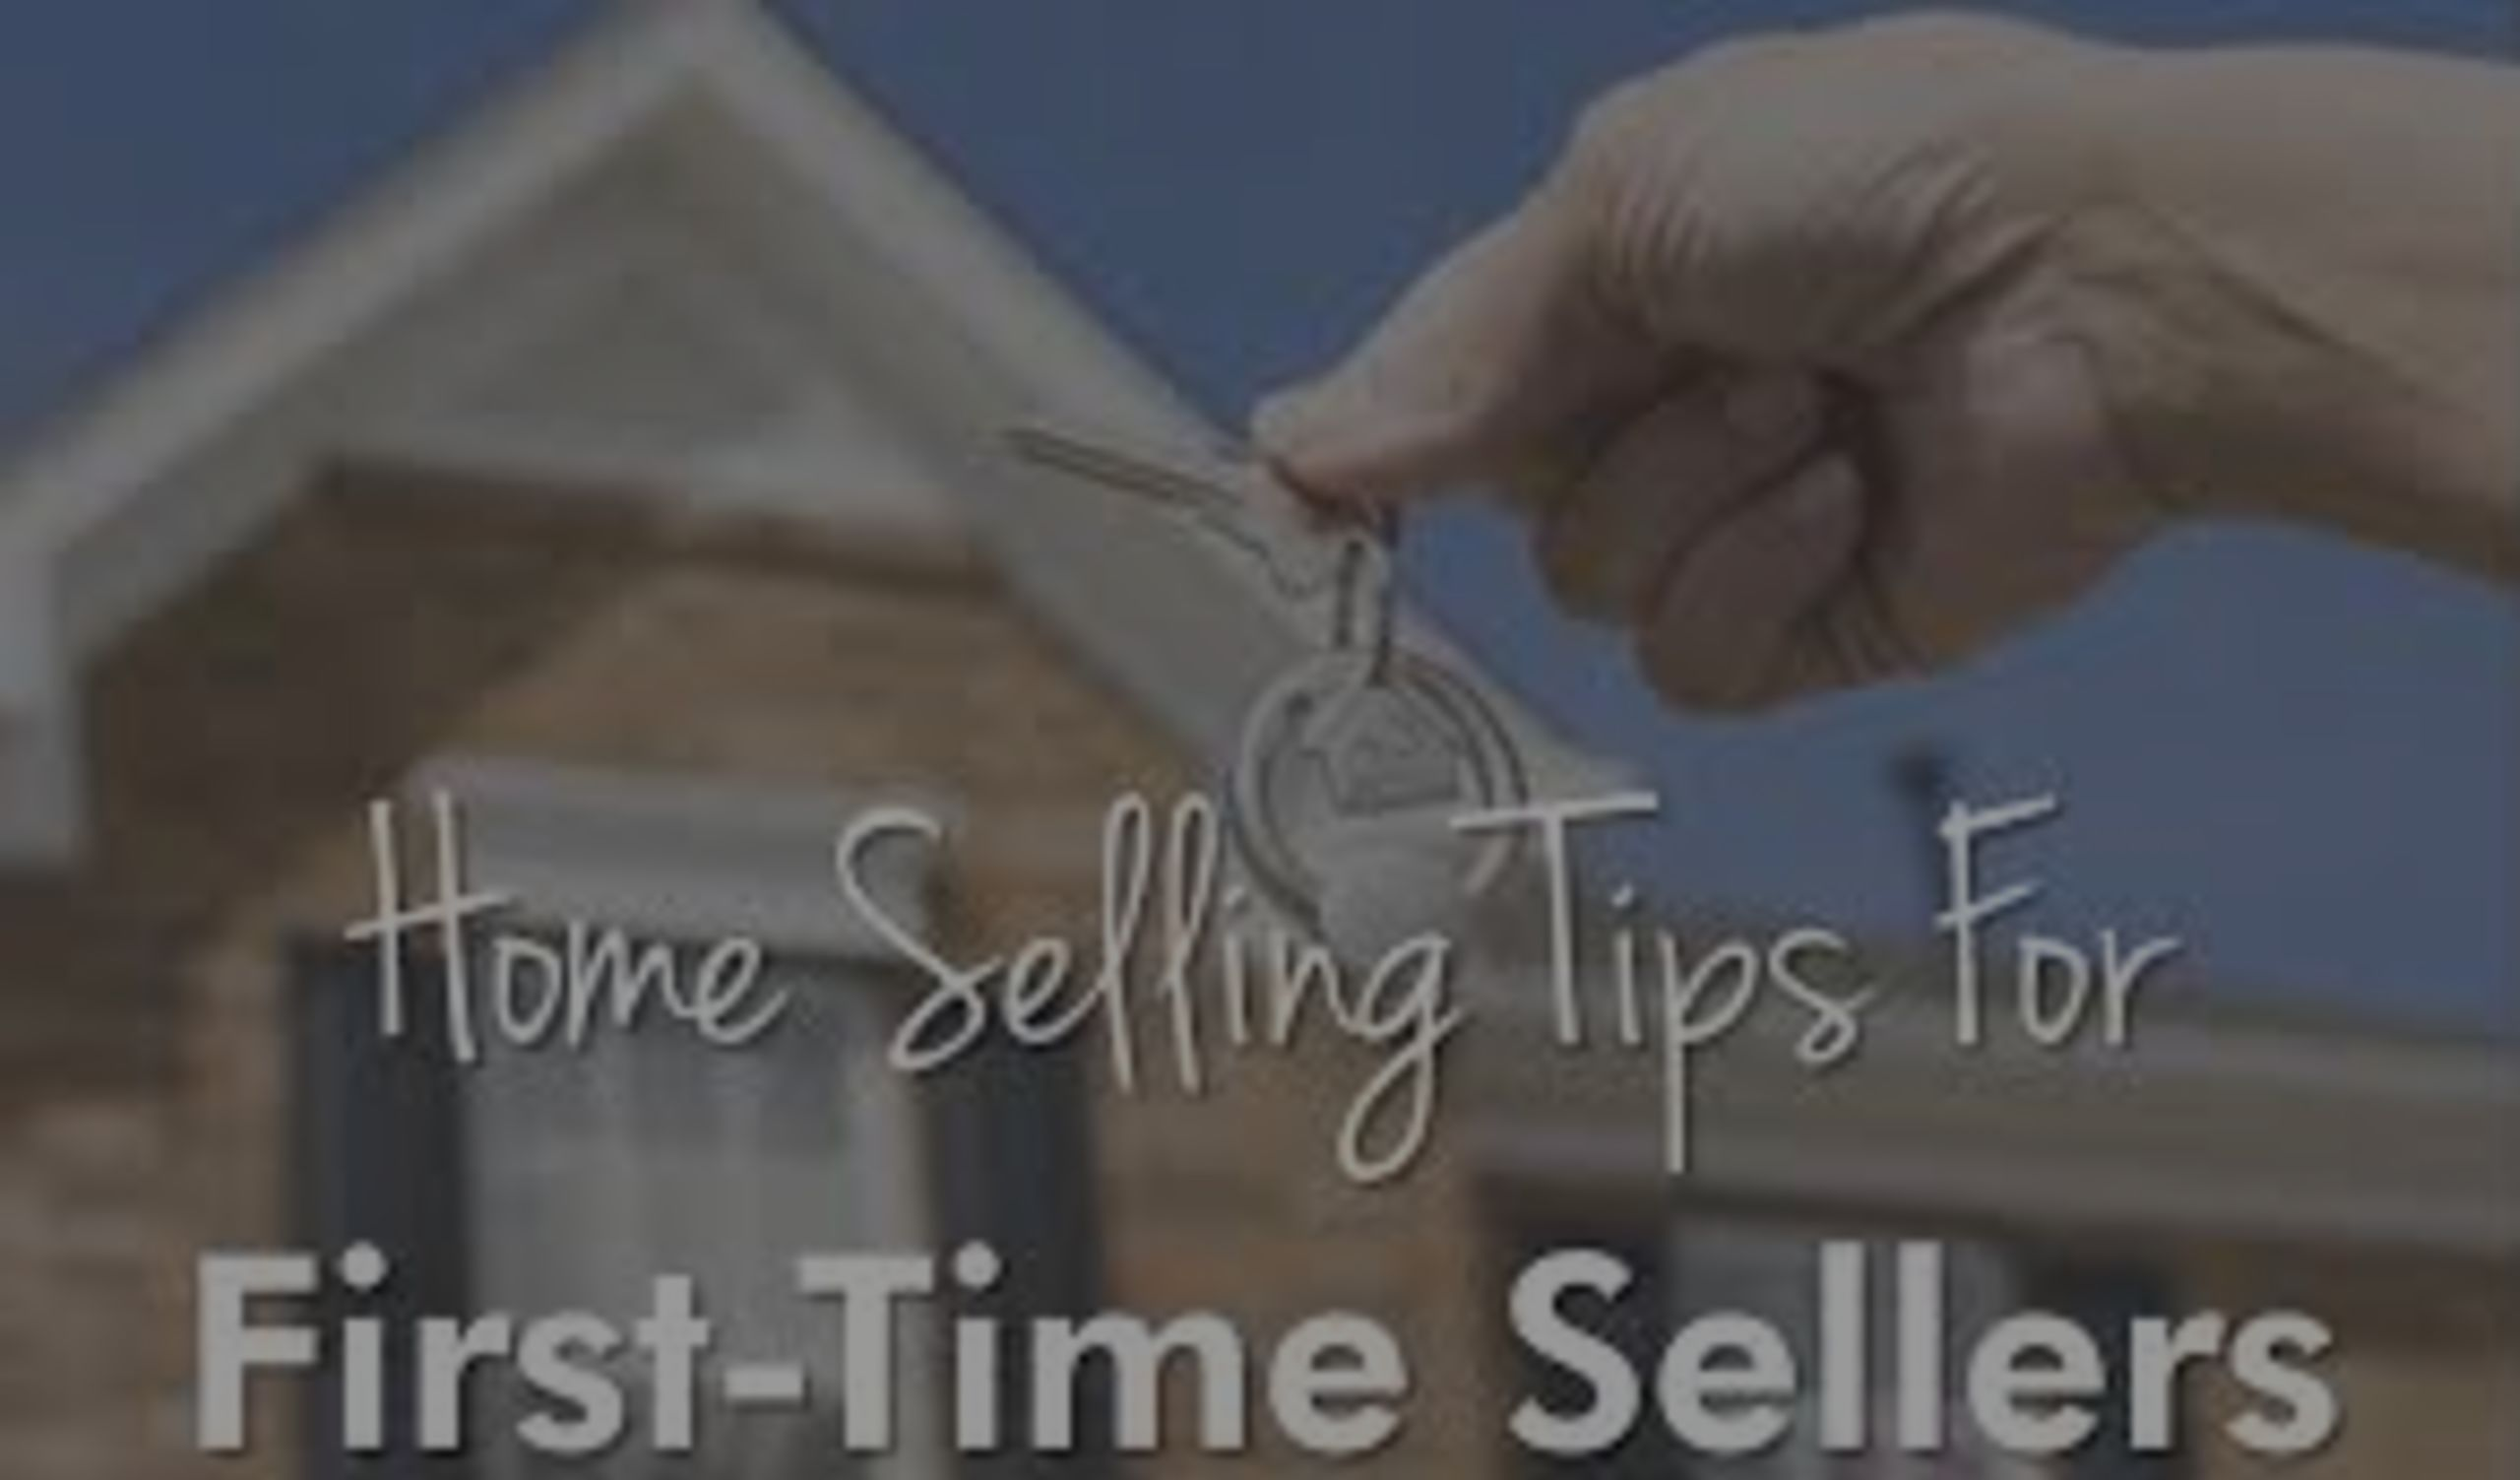 12 Tips for 1st Time Sellers